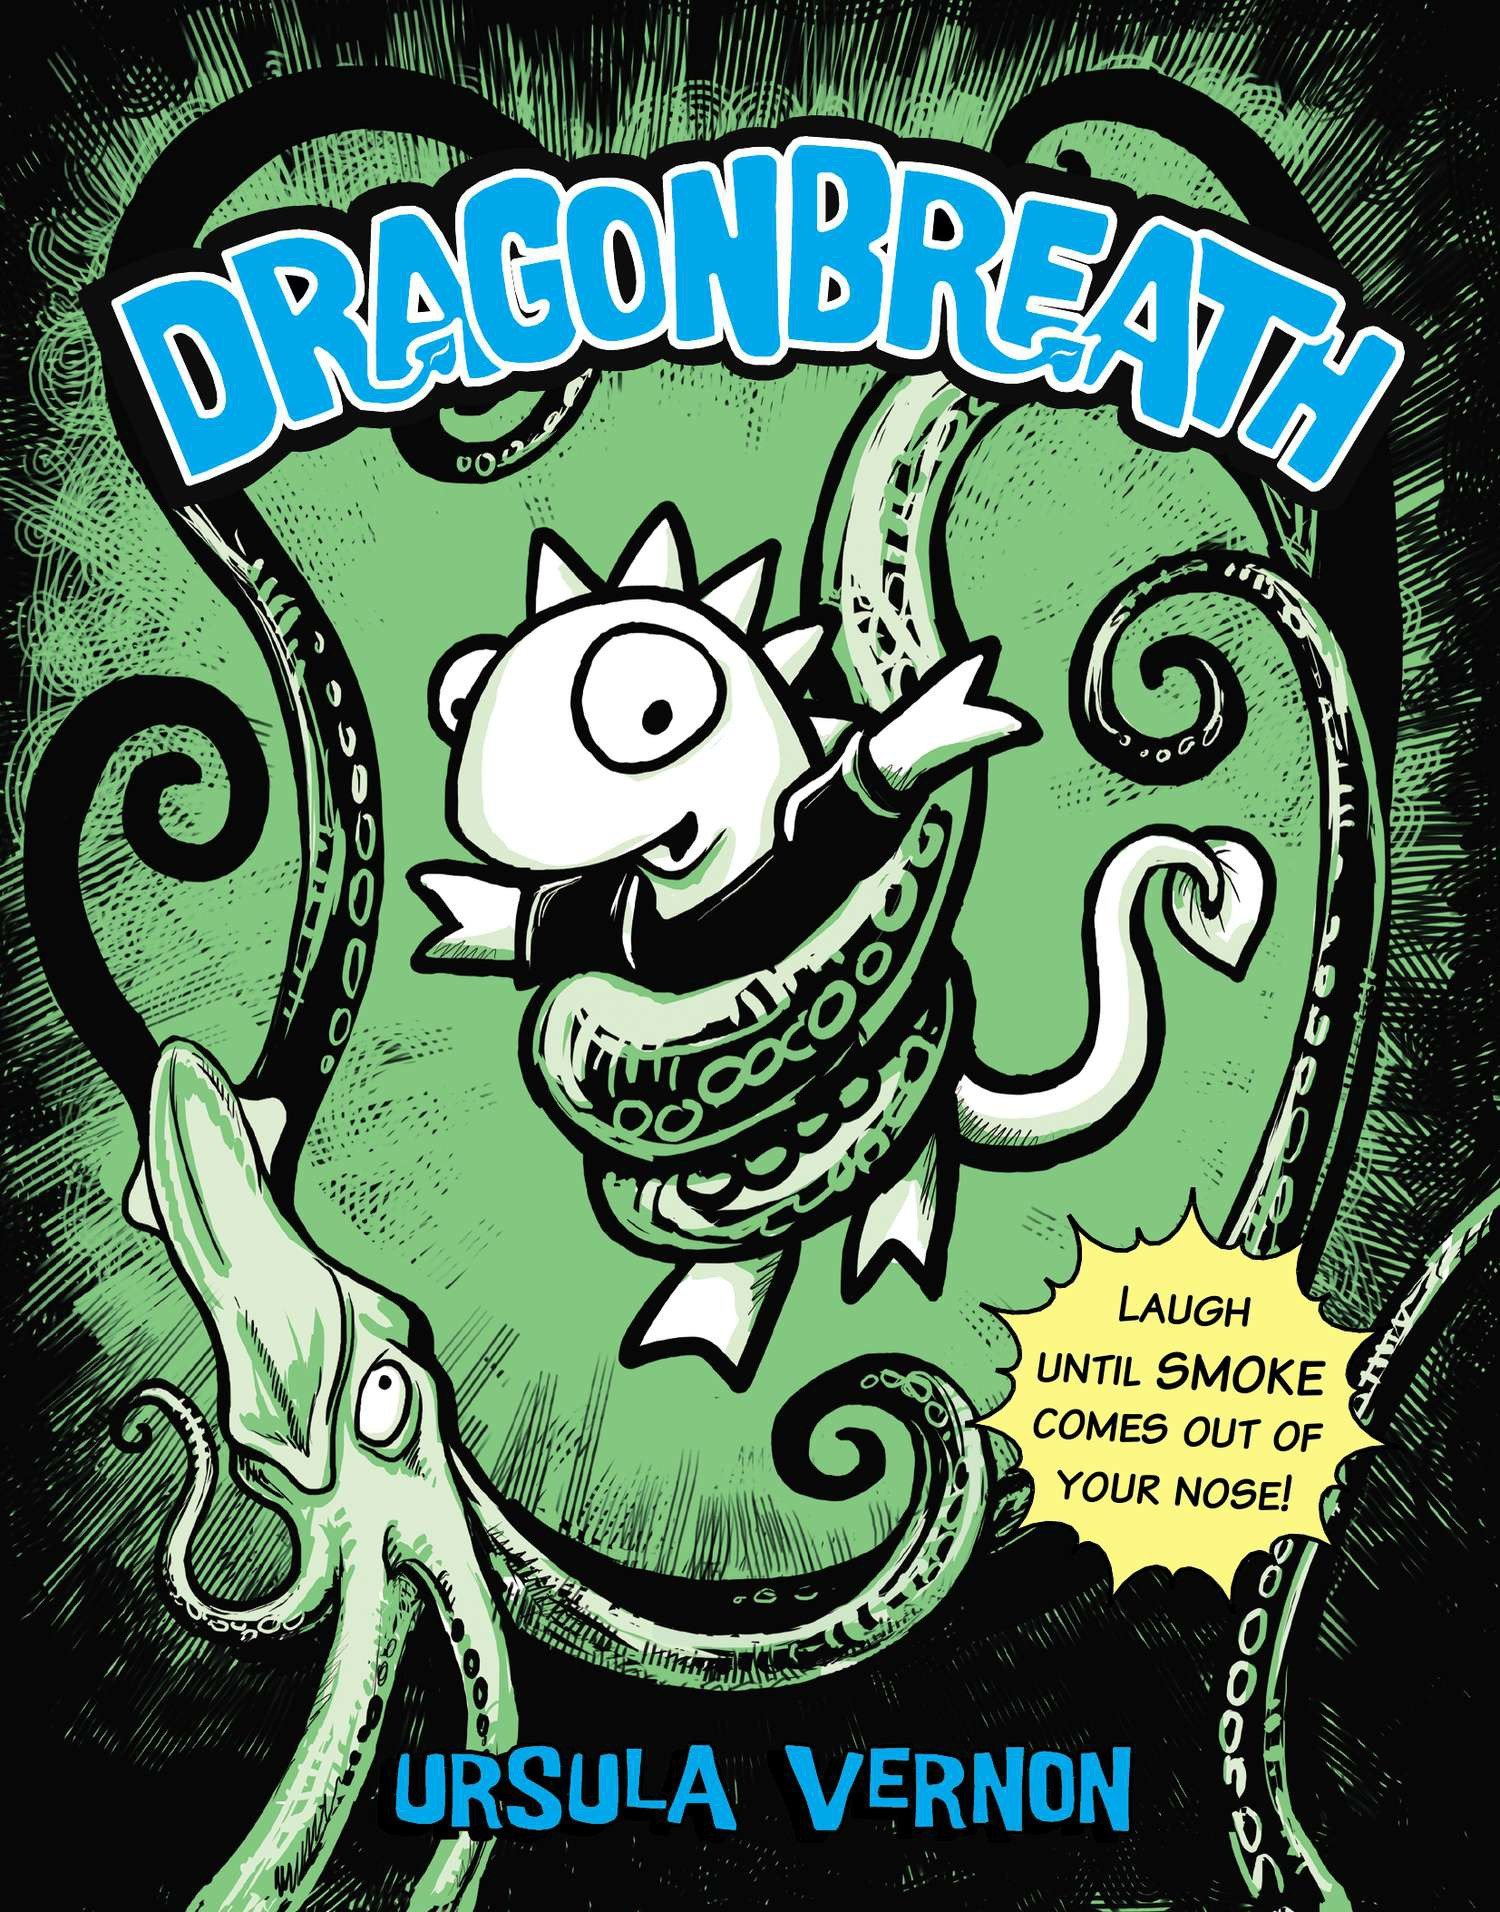 Dragonbreath cover image